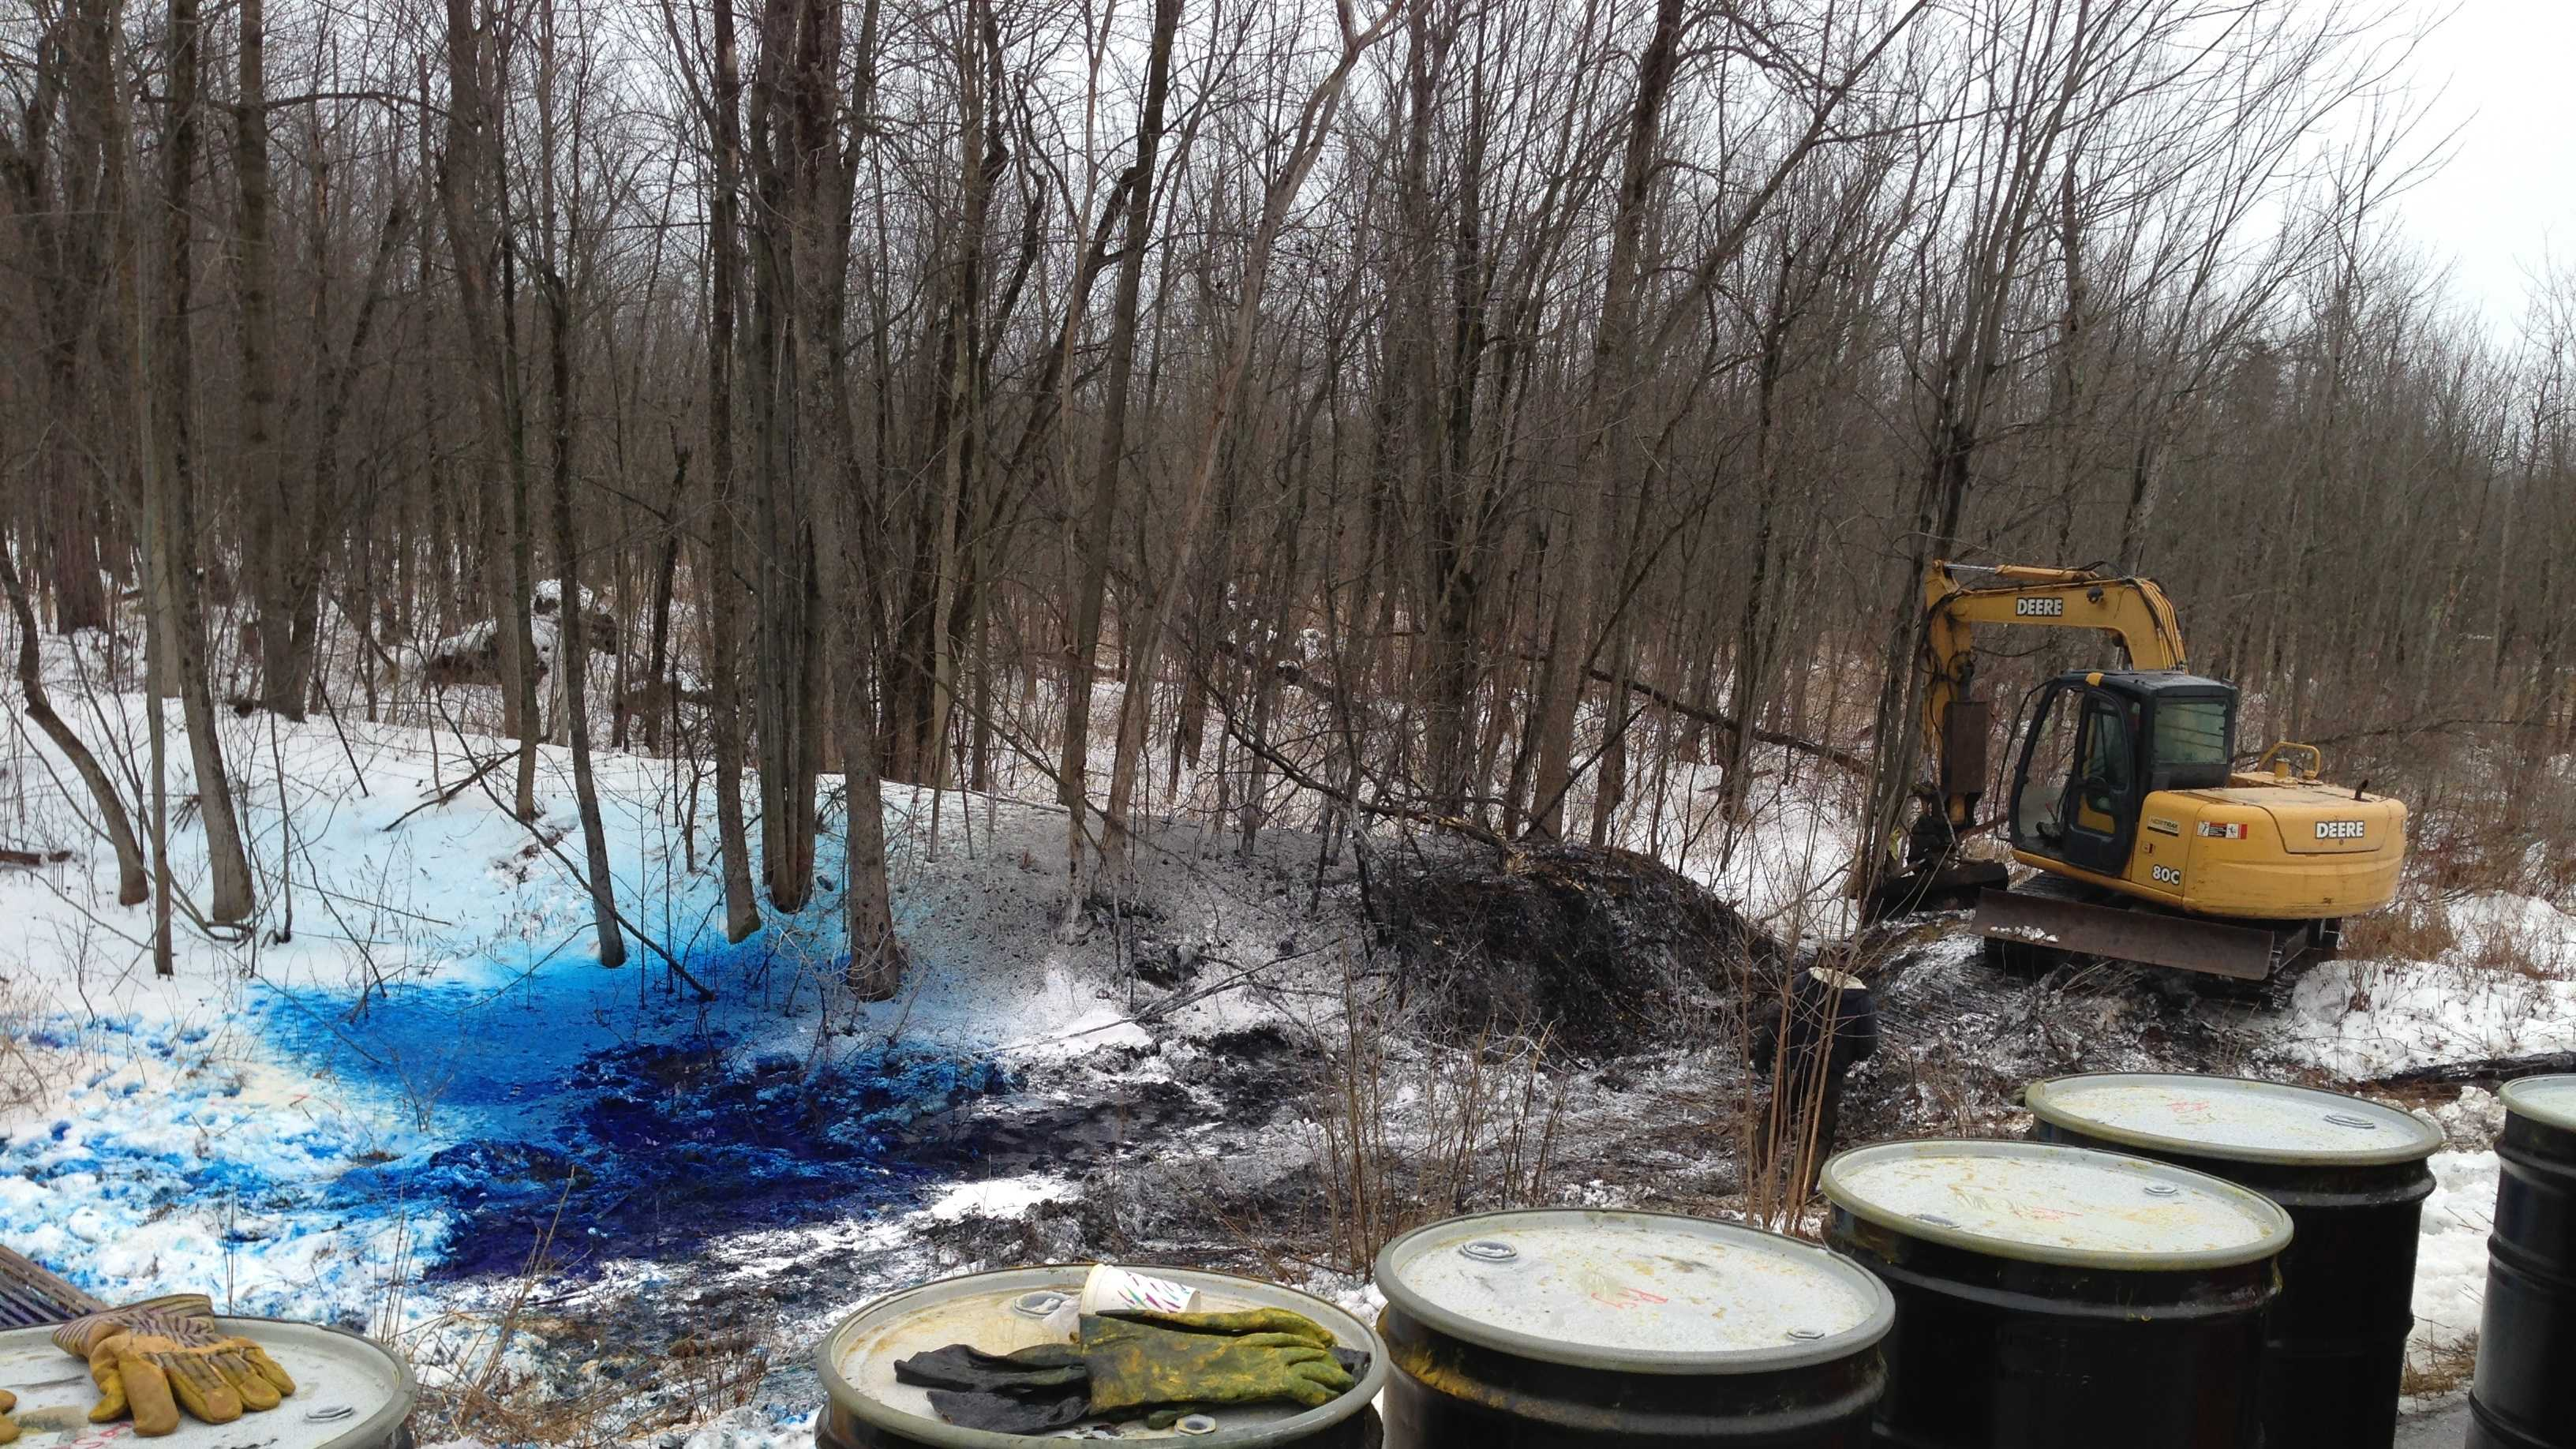 A tractor-trailer carrying barrels of black ink crash early Tuesday morning in Alburgh, Vt. Authorities believe the driver hit black ice.